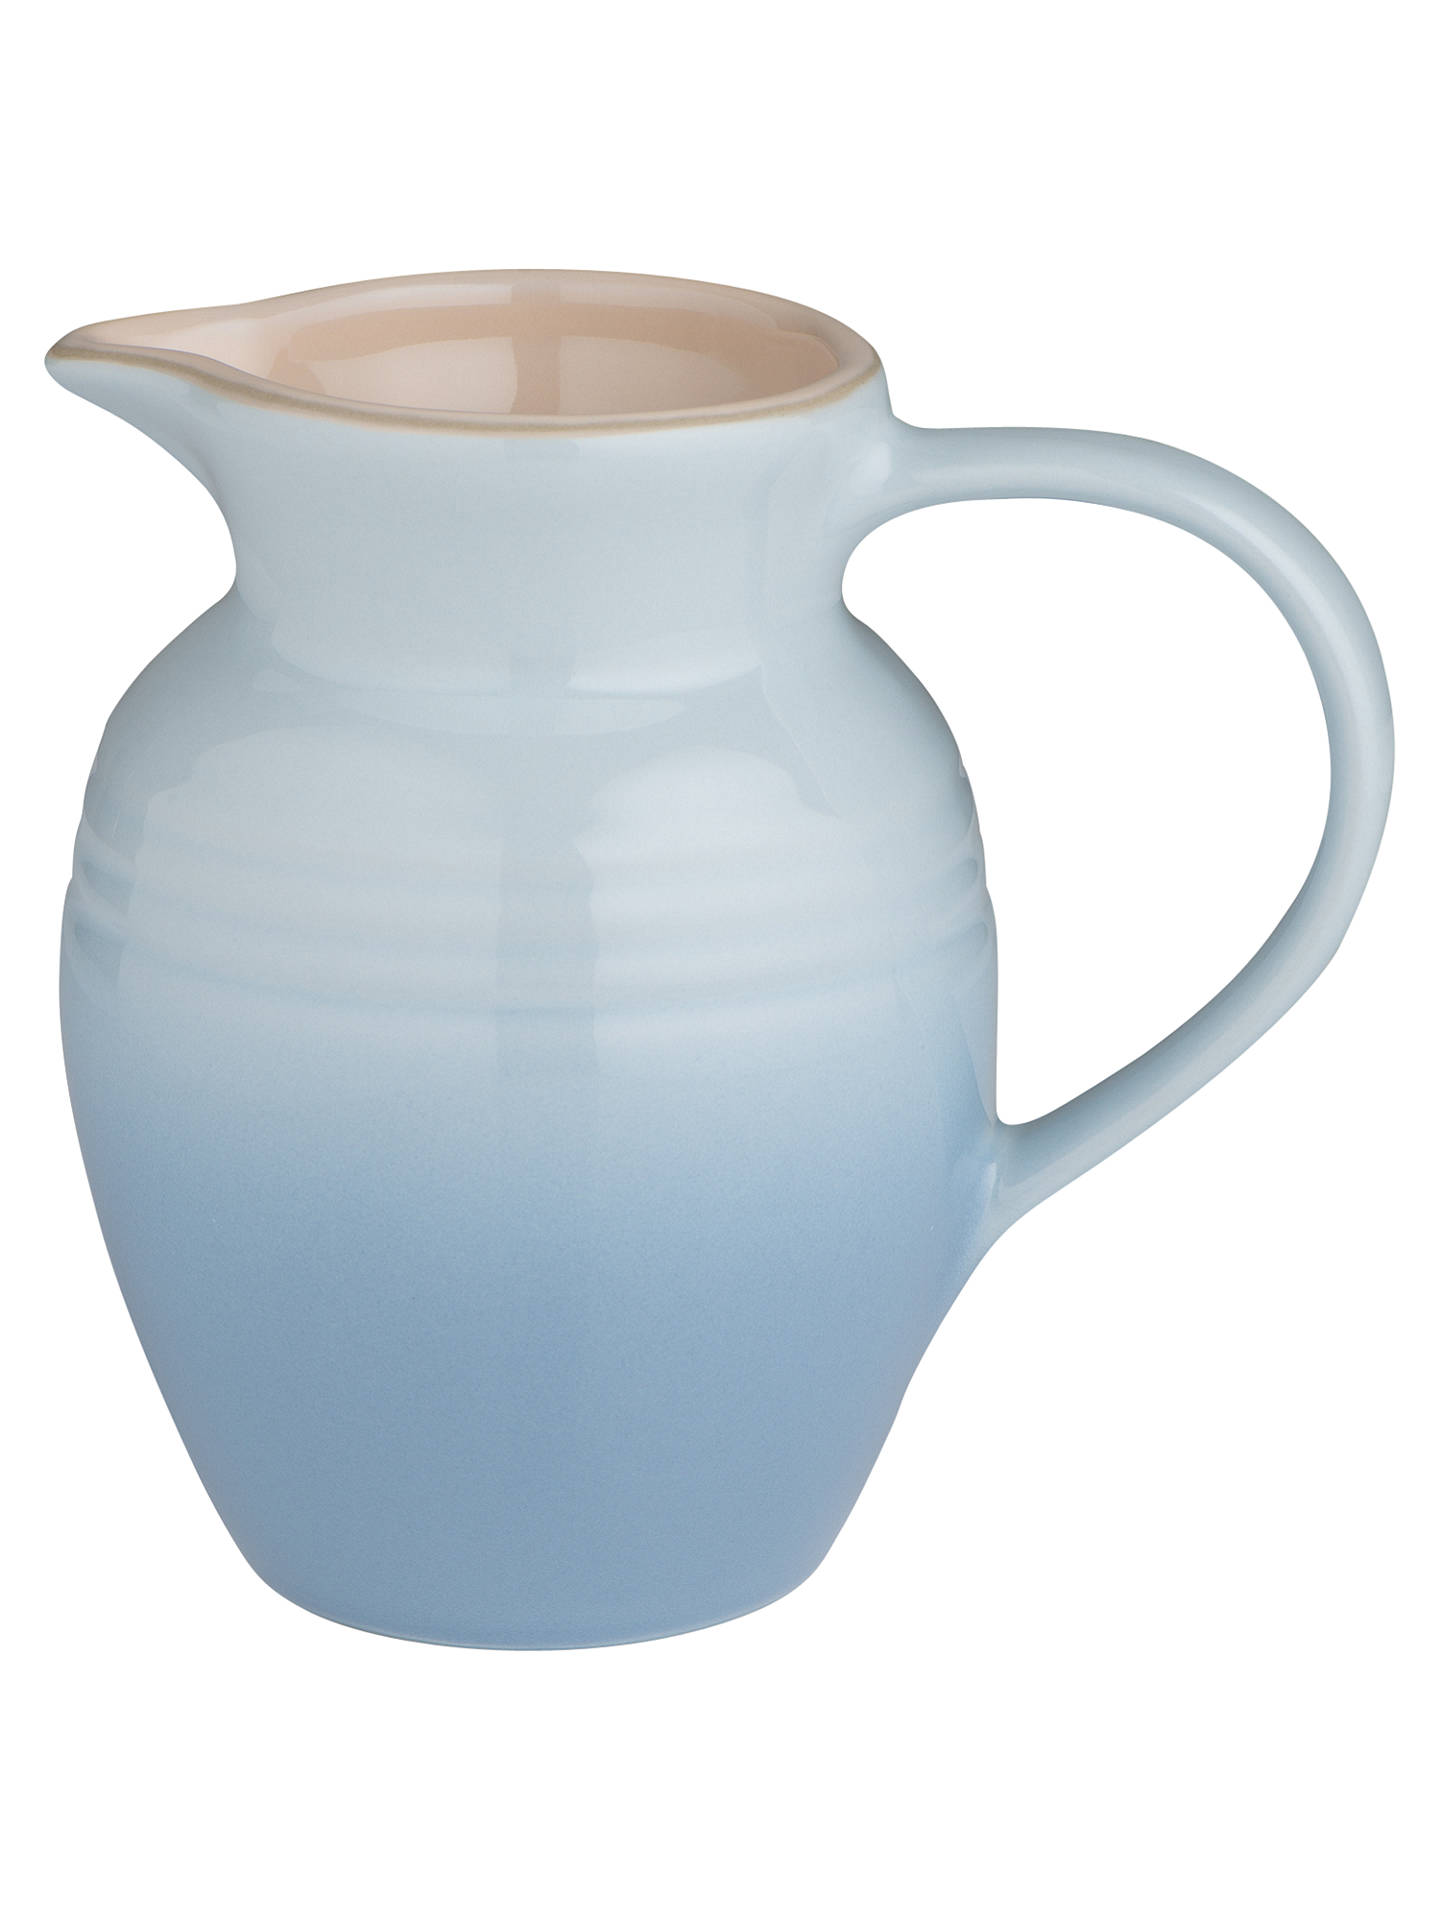 Buy Le Creuset Stoneware Breakfast Jug, 600ml, Coastal Blue Online at johnlewis.com